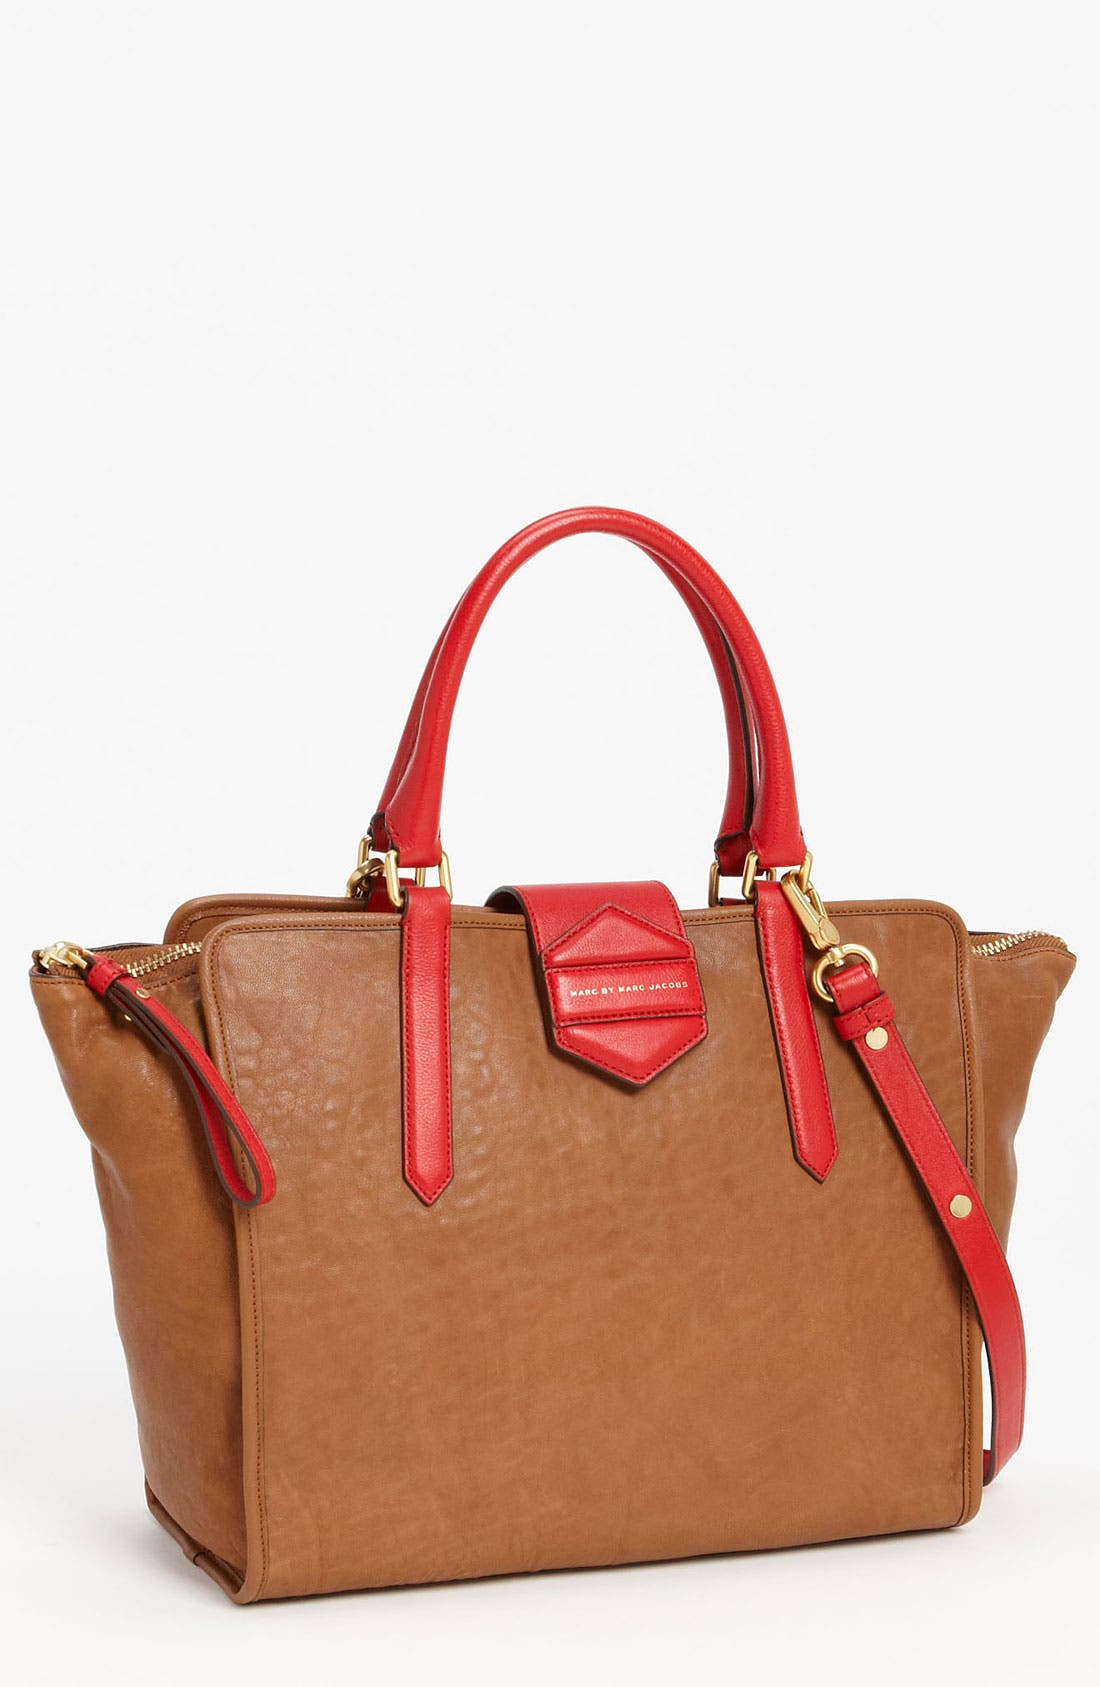 Main Image - MARC BY MARC JACOBS 'Flipping Out' Leather Tote